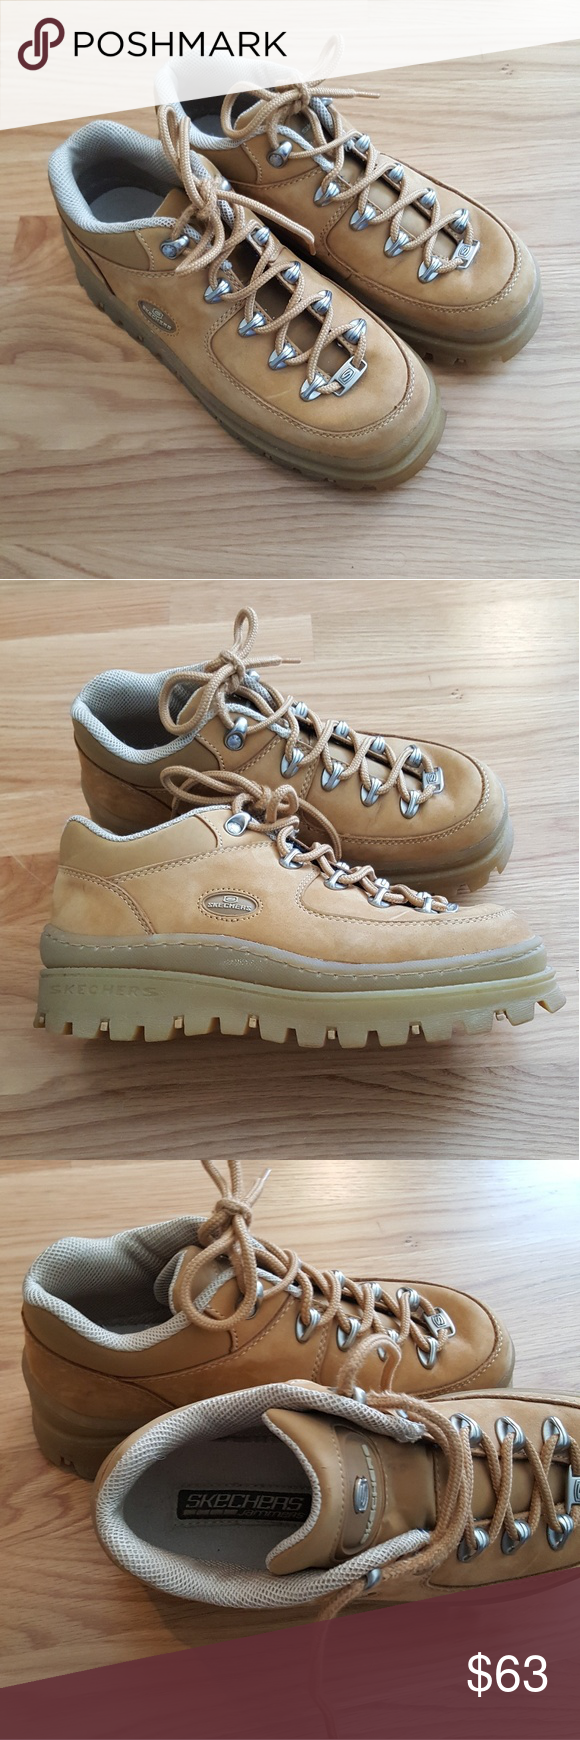 Skechers Jammers Size 8 5 Skechers Tan Suede Suede Lace